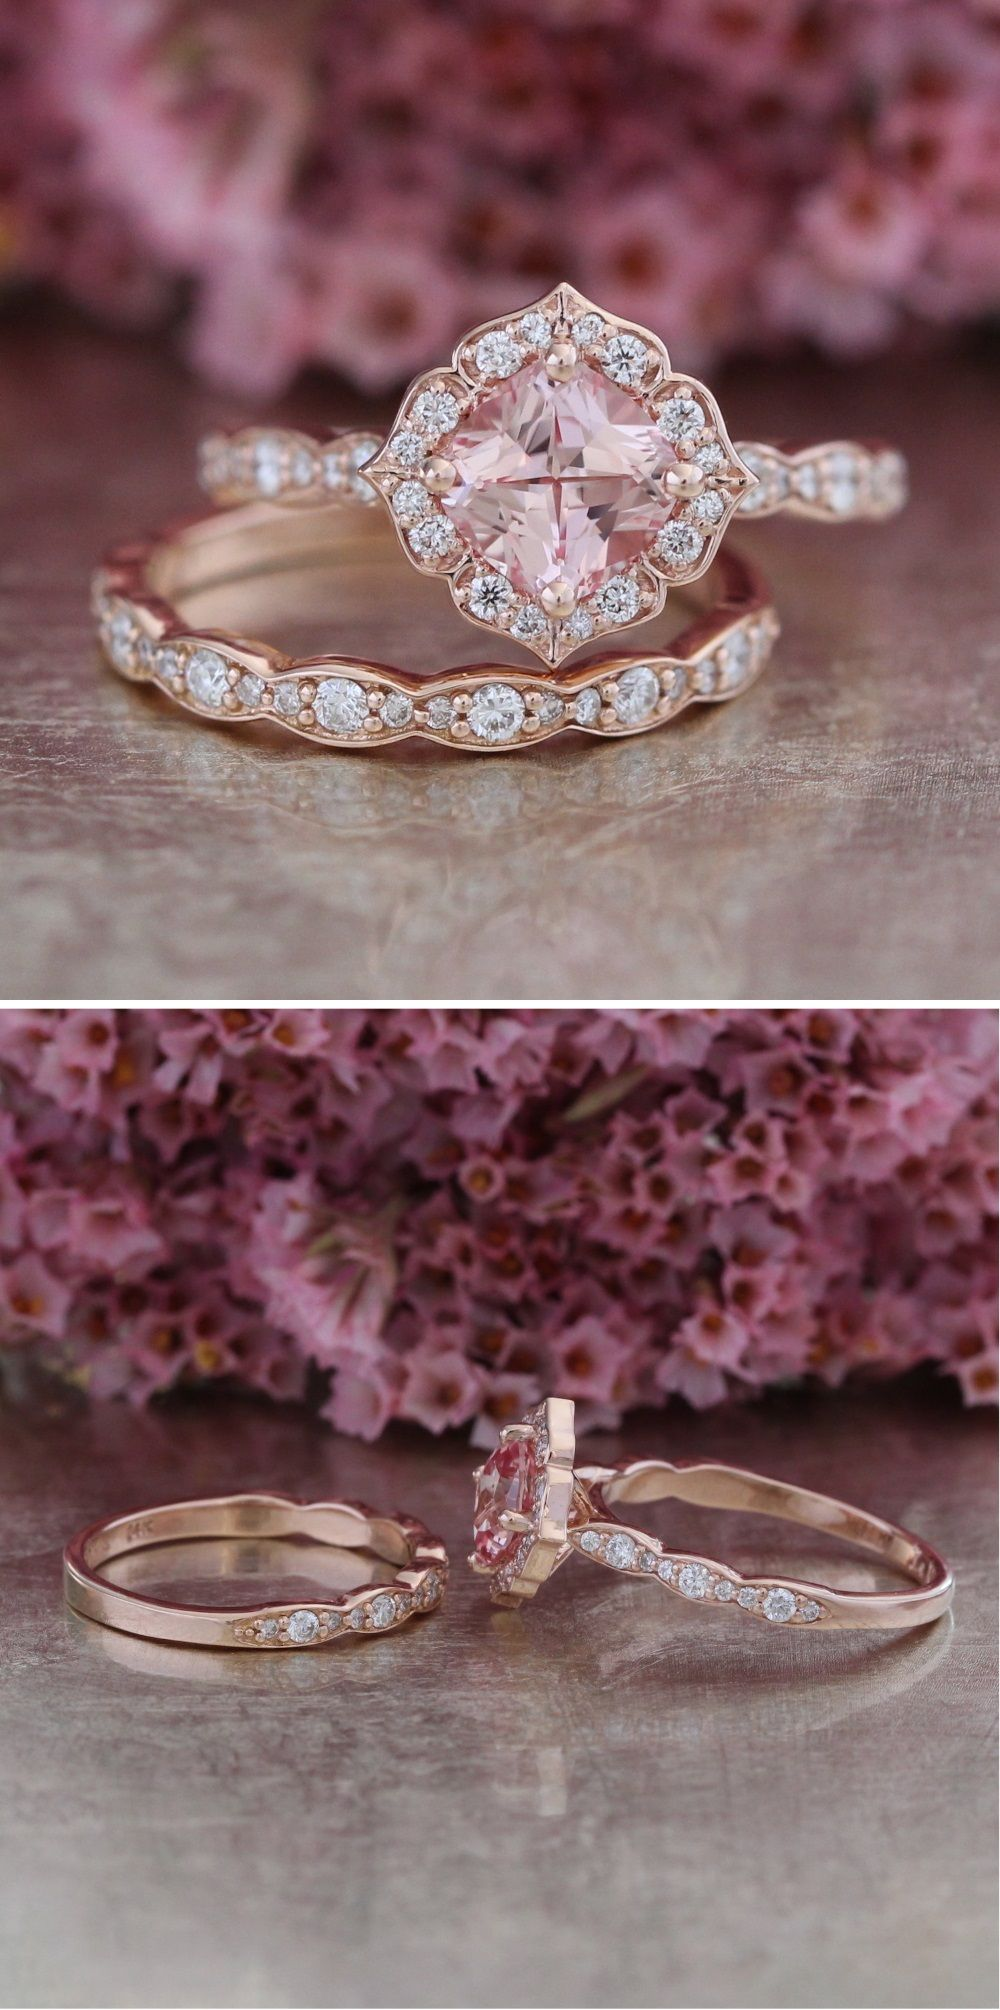 Pink Sapphire Engagement Ring Pink Sapphire Ring Engagement Pink Sapphire Engagement Wedding Rings Vintage